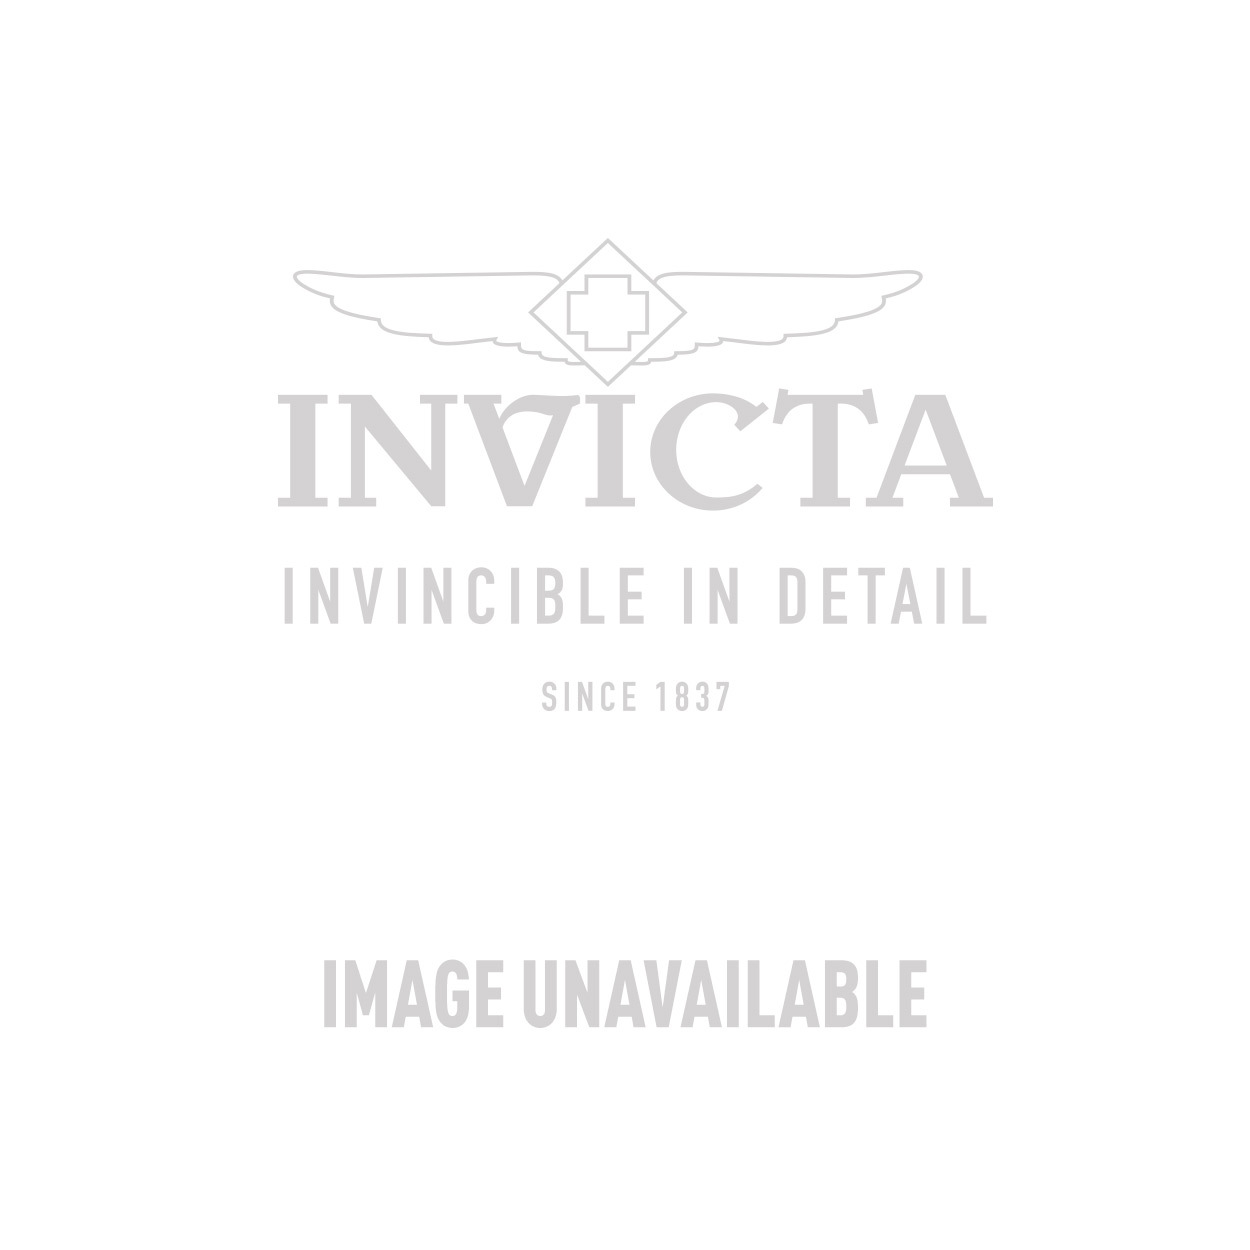 Invicta Excursion Swiss Made Quartz Watch - Gold case with Gold tone Stainless Steel band - Model 6256